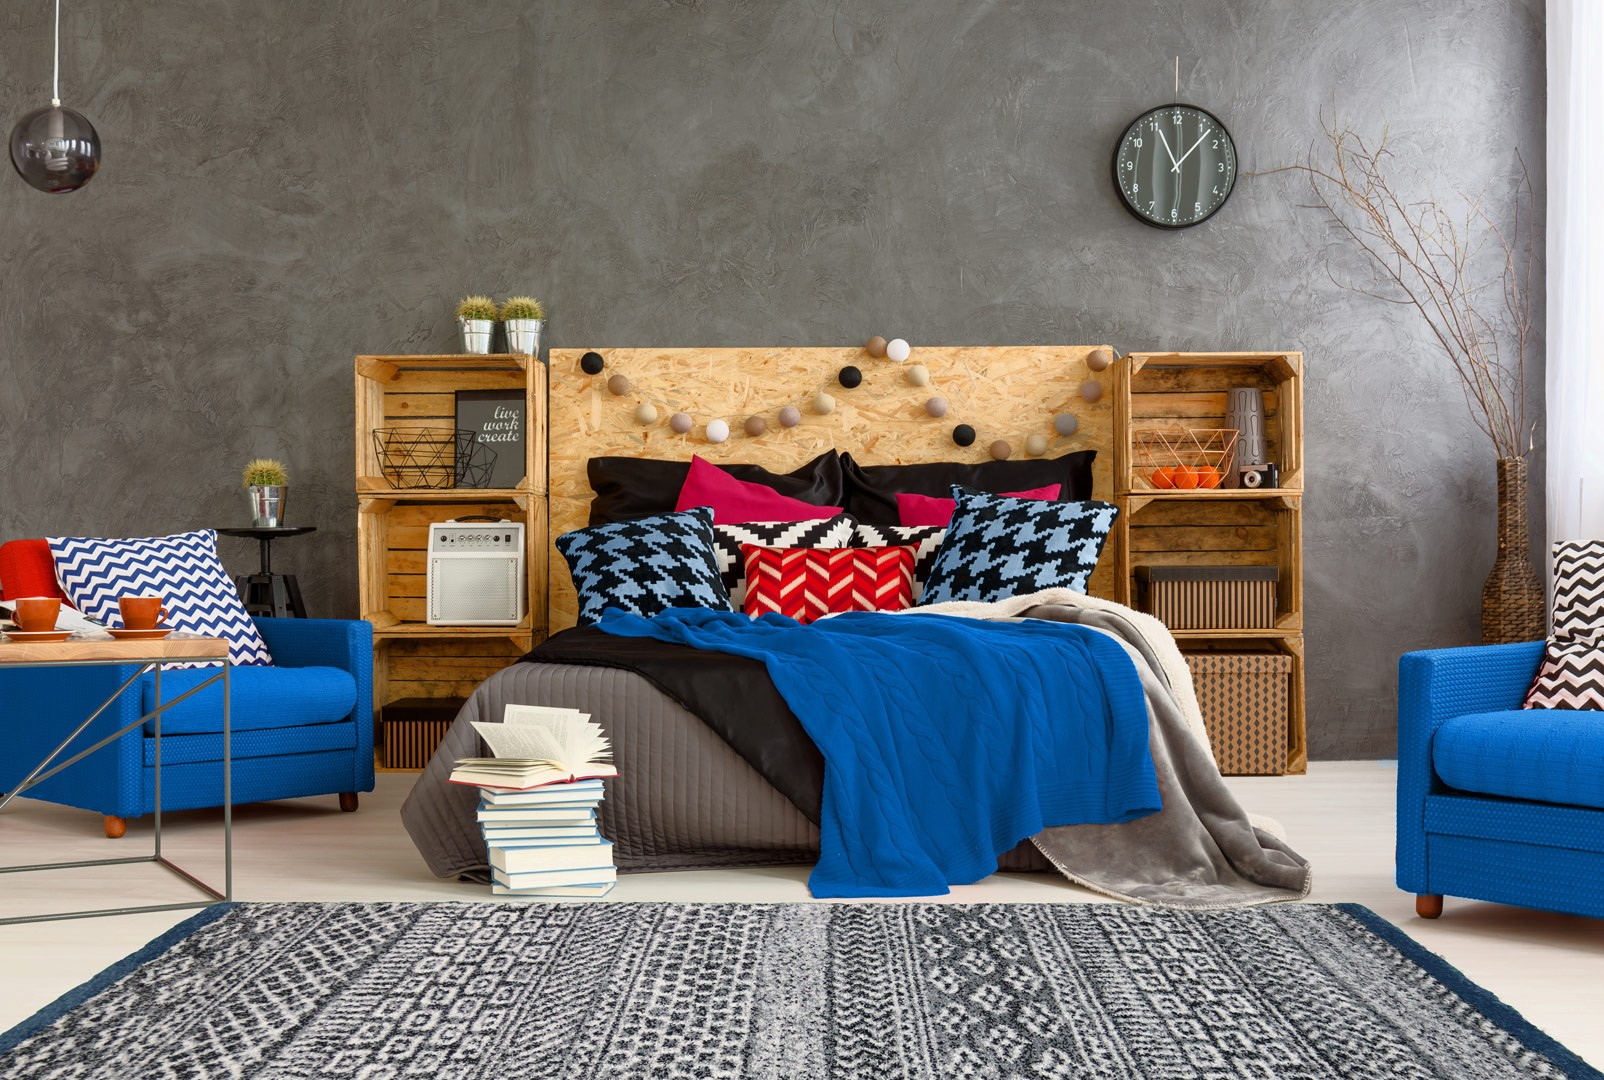 tapis ethnique pour chambre bleu doux spectre. Black Bedroom Furniture Sets. Home Design Ideas